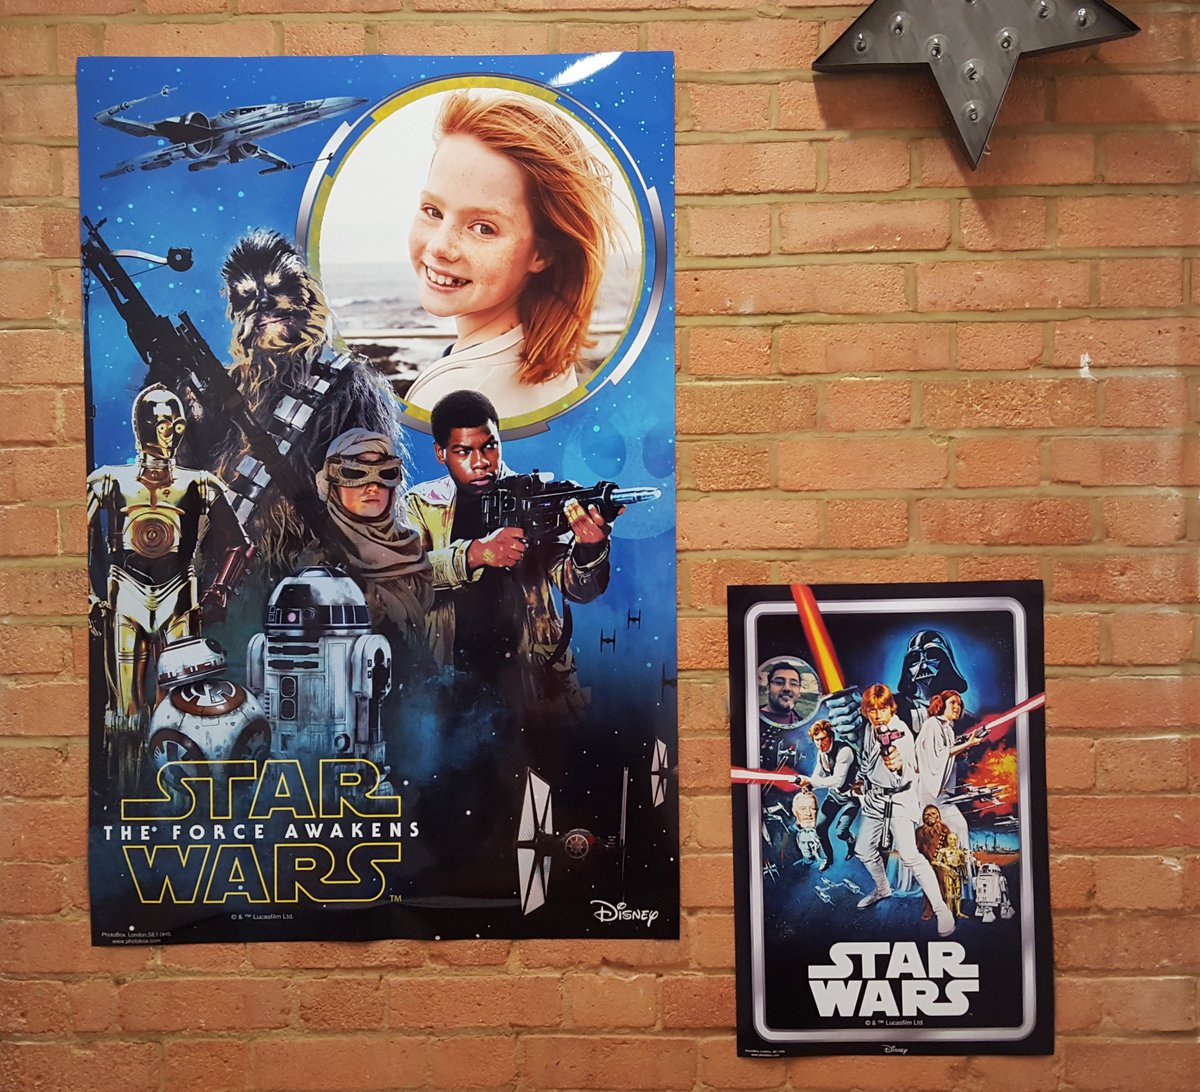 Happy #StarWarsDay! RT for a chance to win your very own movie poster #Maythe4thbewithyou ends 23.59 04/05 https://t.co/y1wdGpw54U